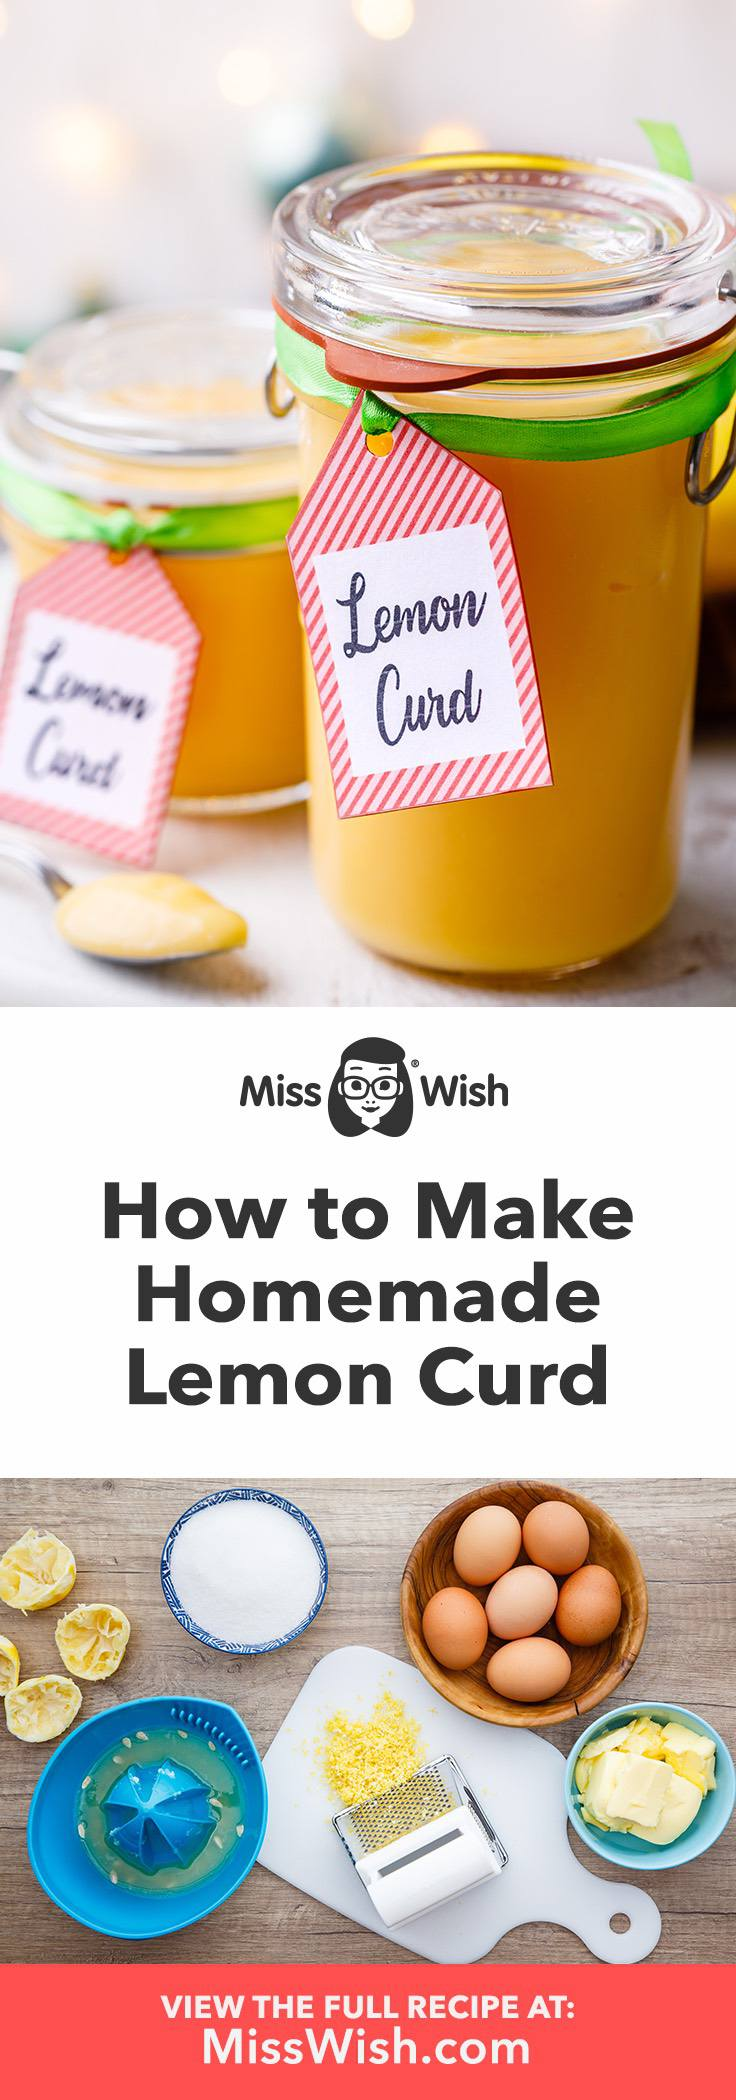 How to make the best homemade lemon curd with only 5 ingredients.